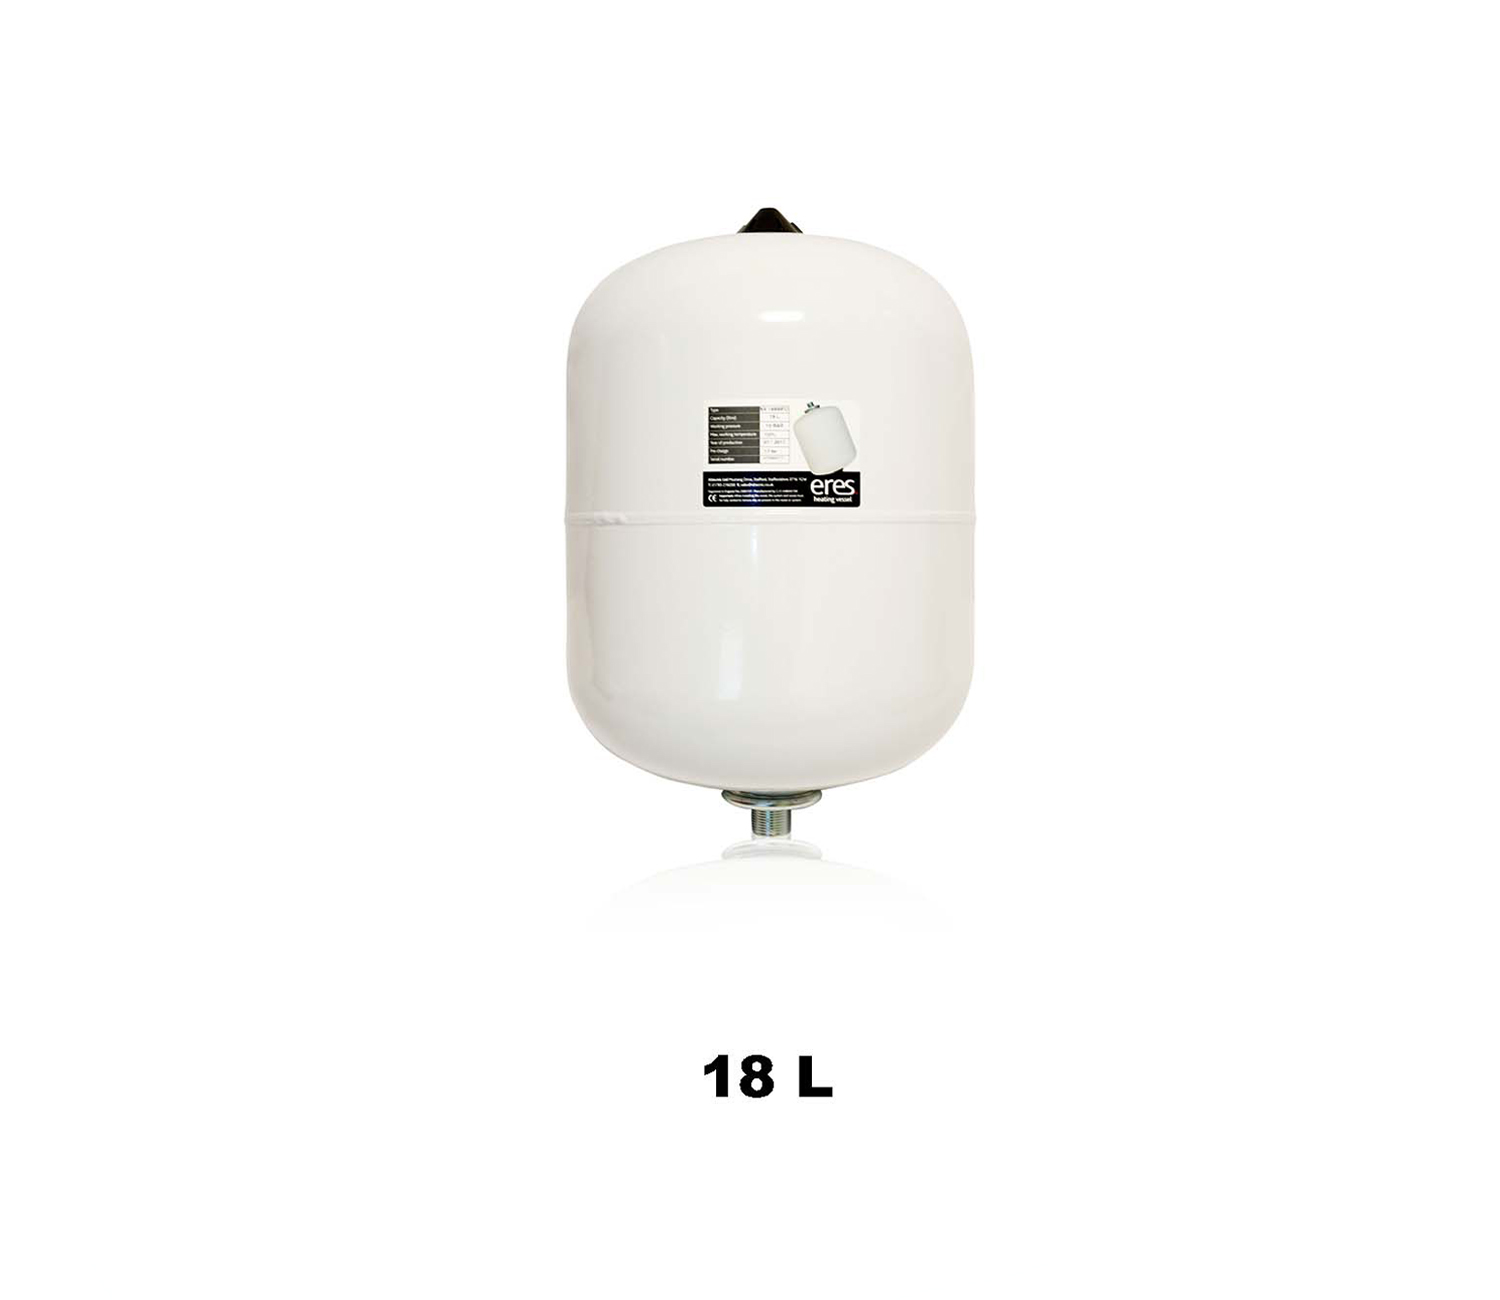 Solar expansion Vessel 18 L high temp